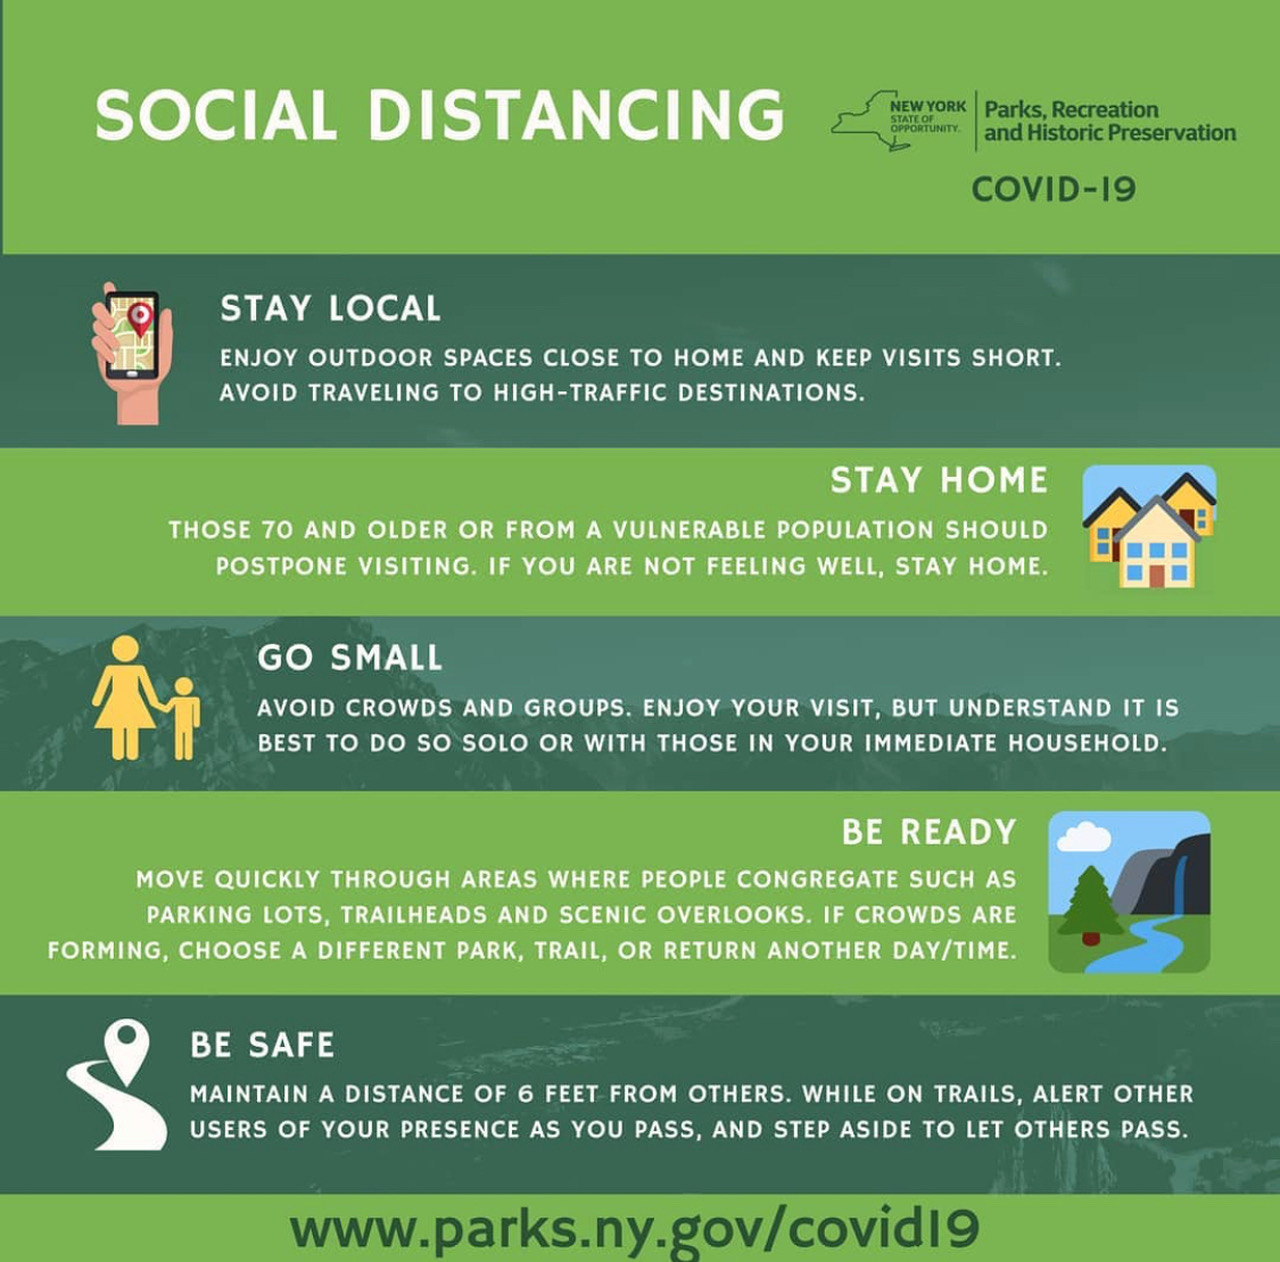 how to maintain social distancing in the westchester parks